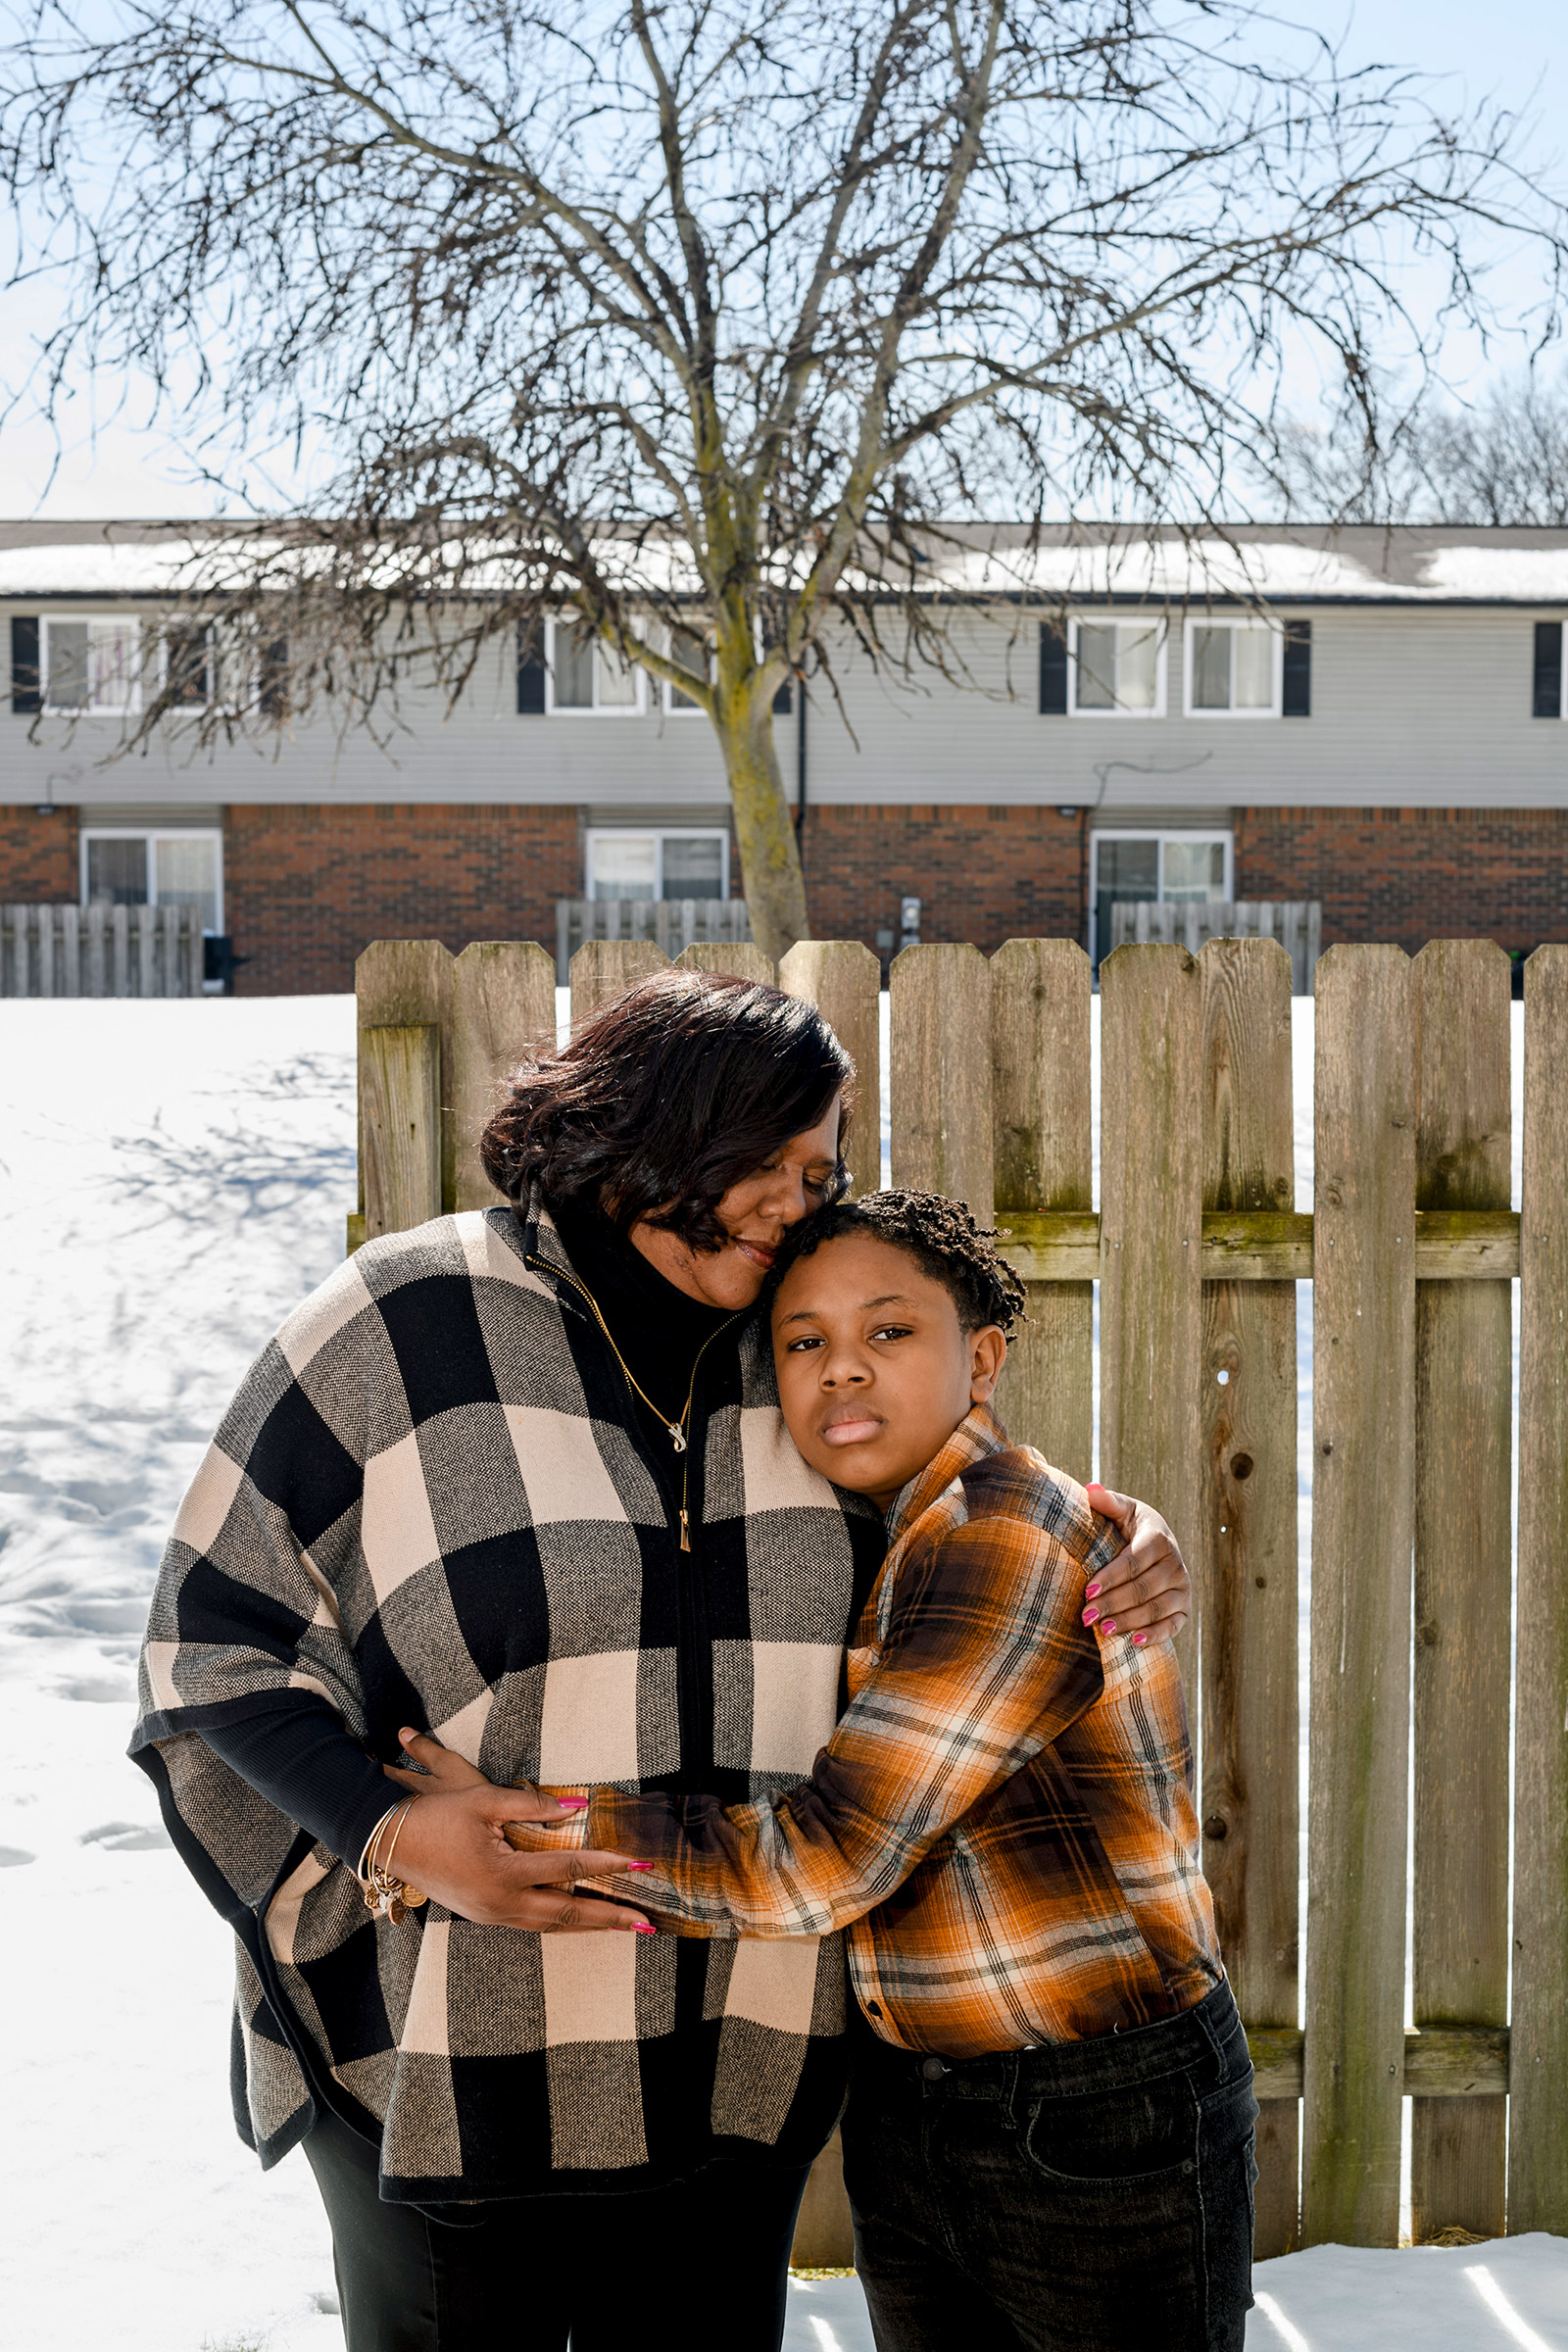 Tamara Brown and her son near their home in Southfield, Mich.